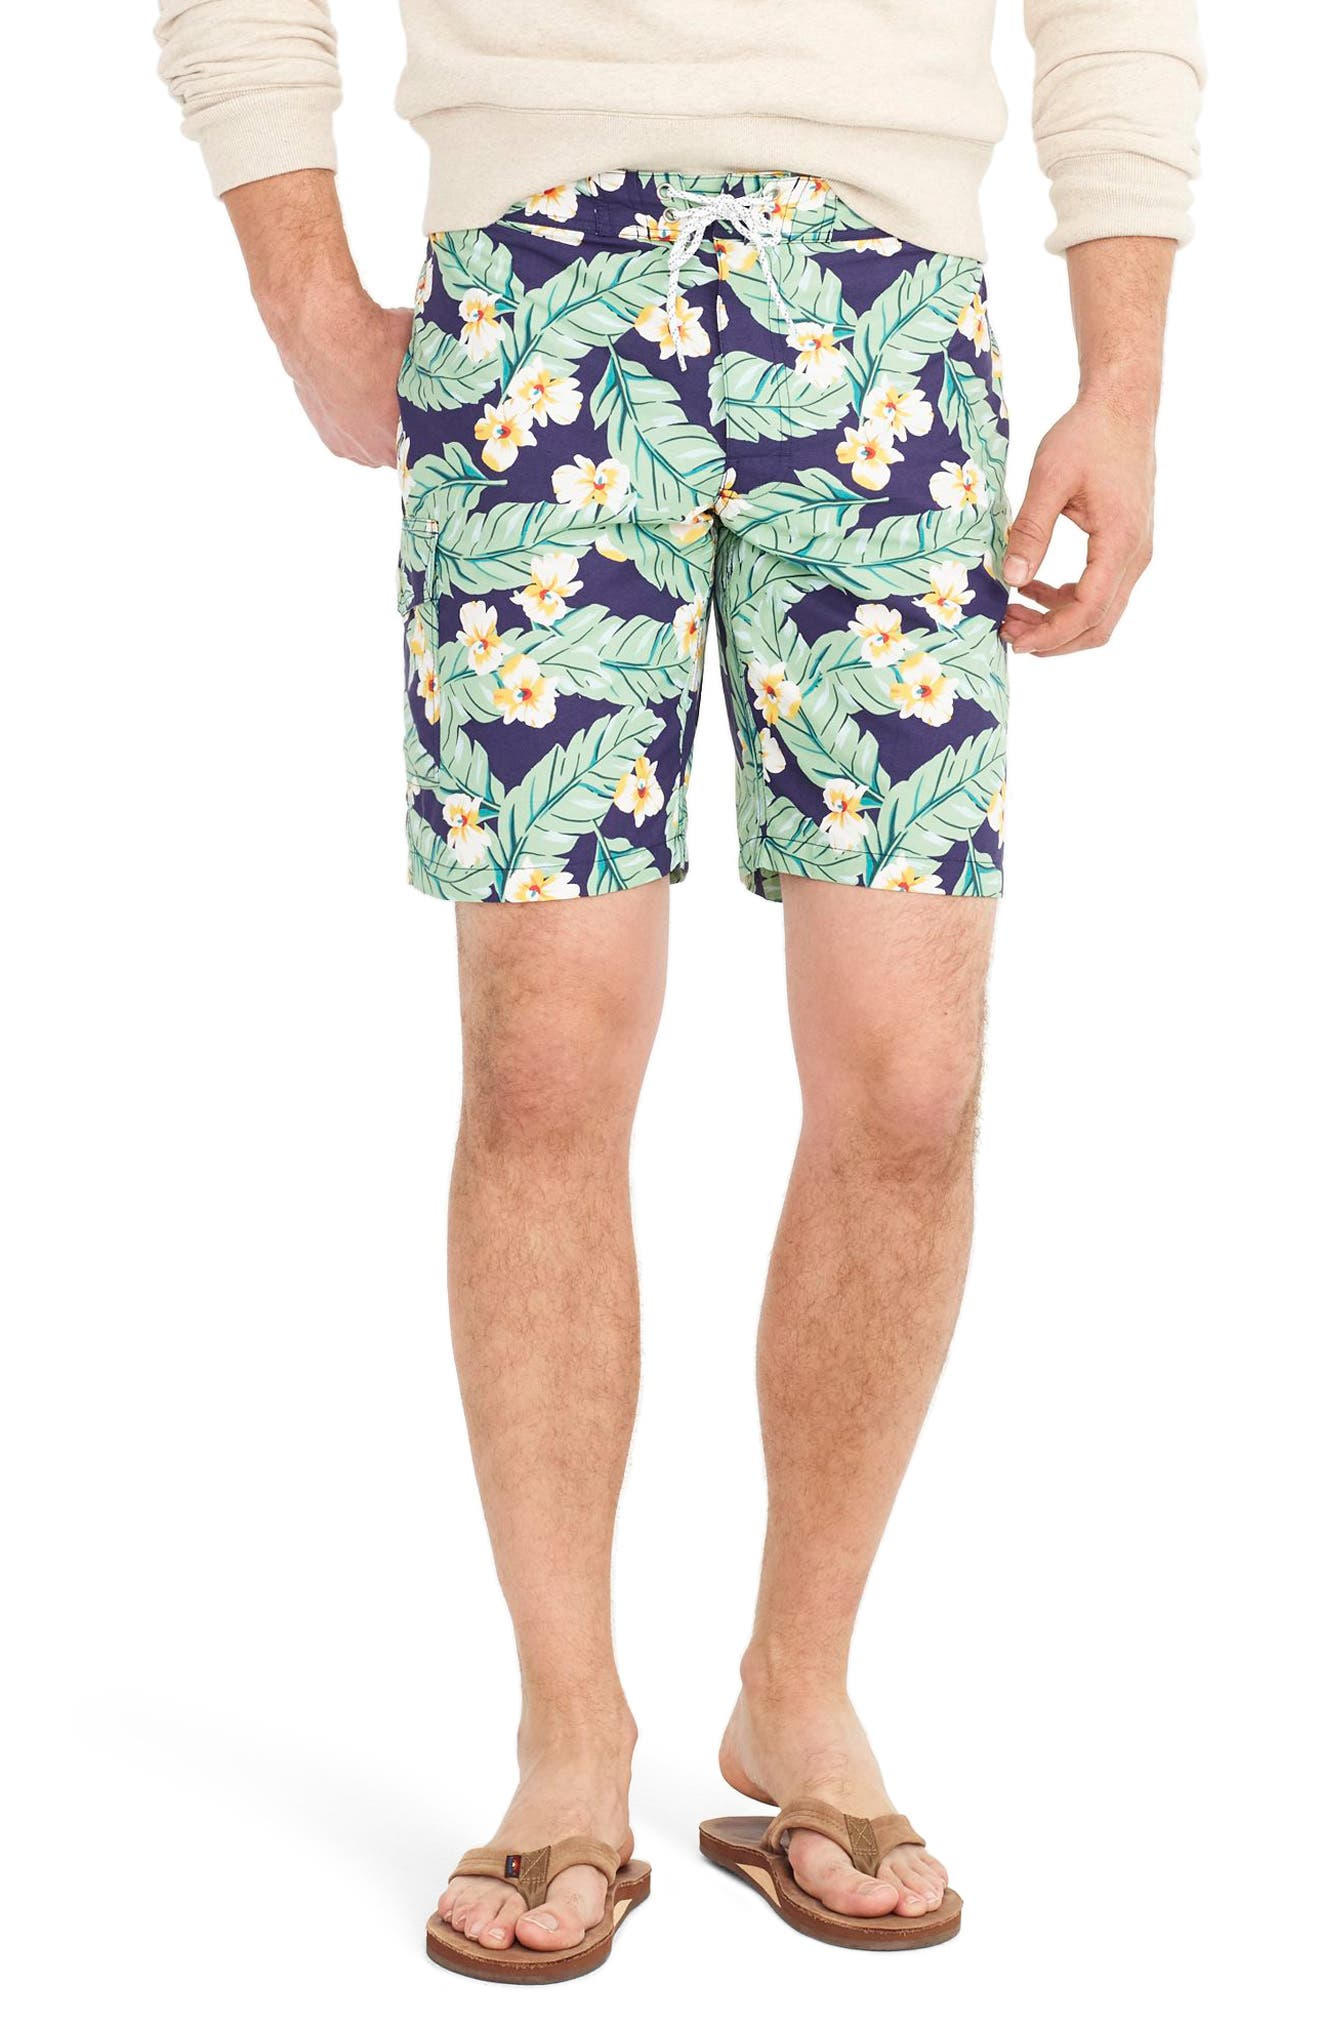 J.Crew Jungle Fern Print Swim Trunks